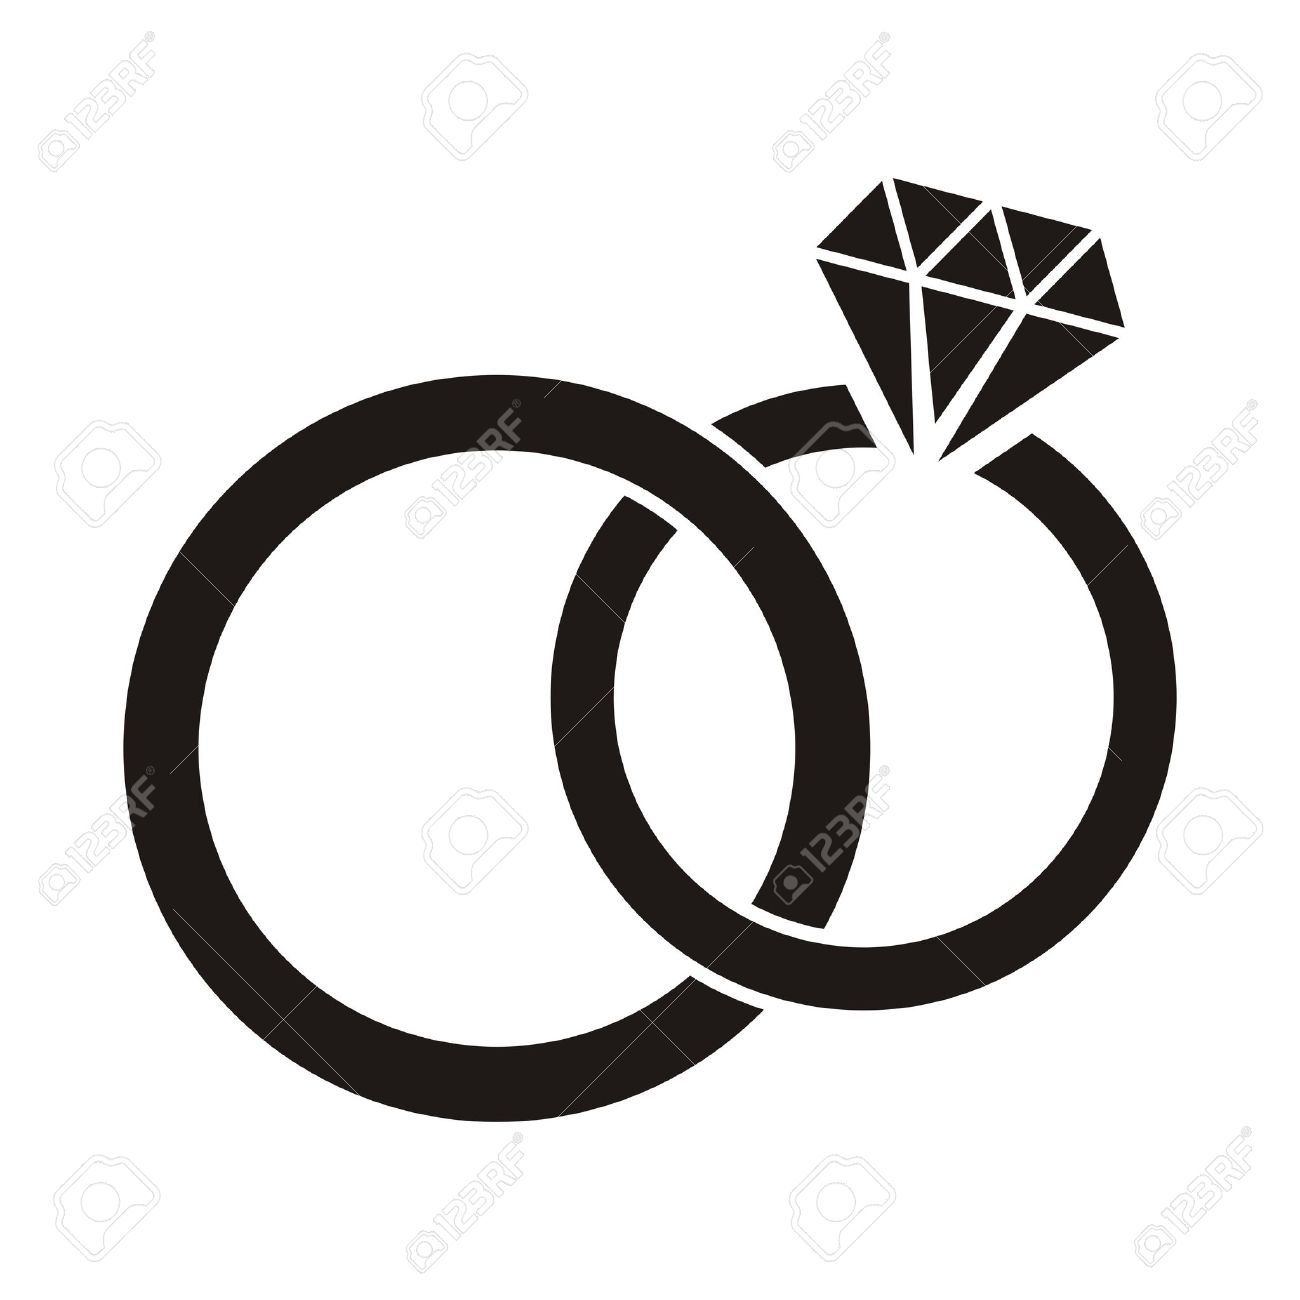 illustration black wedding rings icon on white background stock vector 26049612 - Black And White Wedding Rings